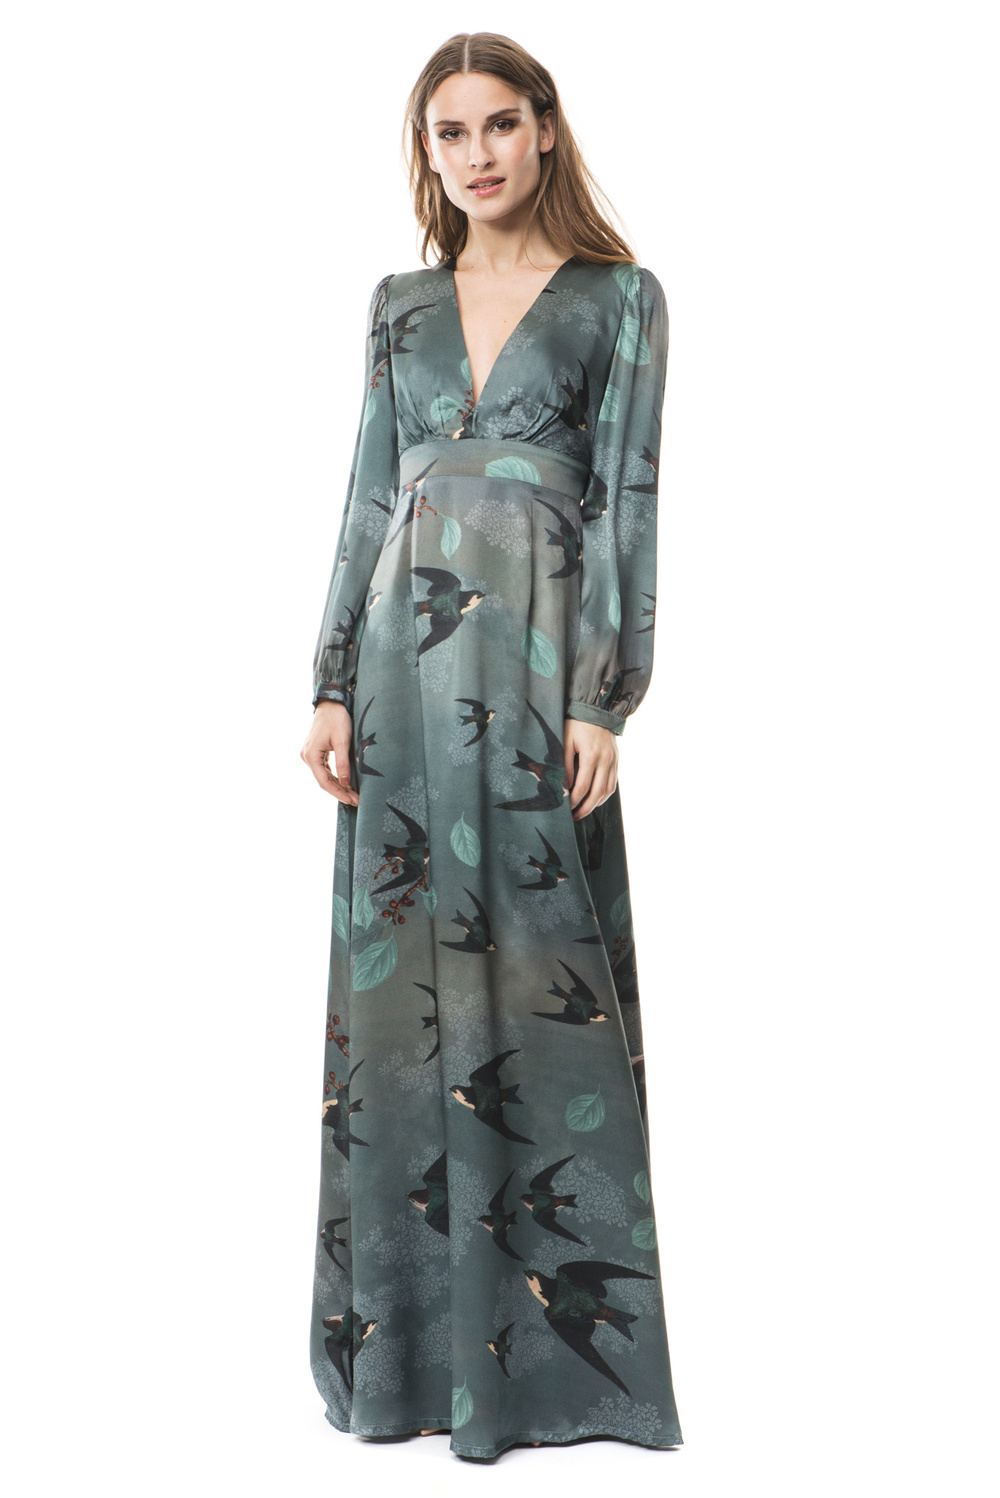 Maxi Dresses By Malina Official Designer Clothing